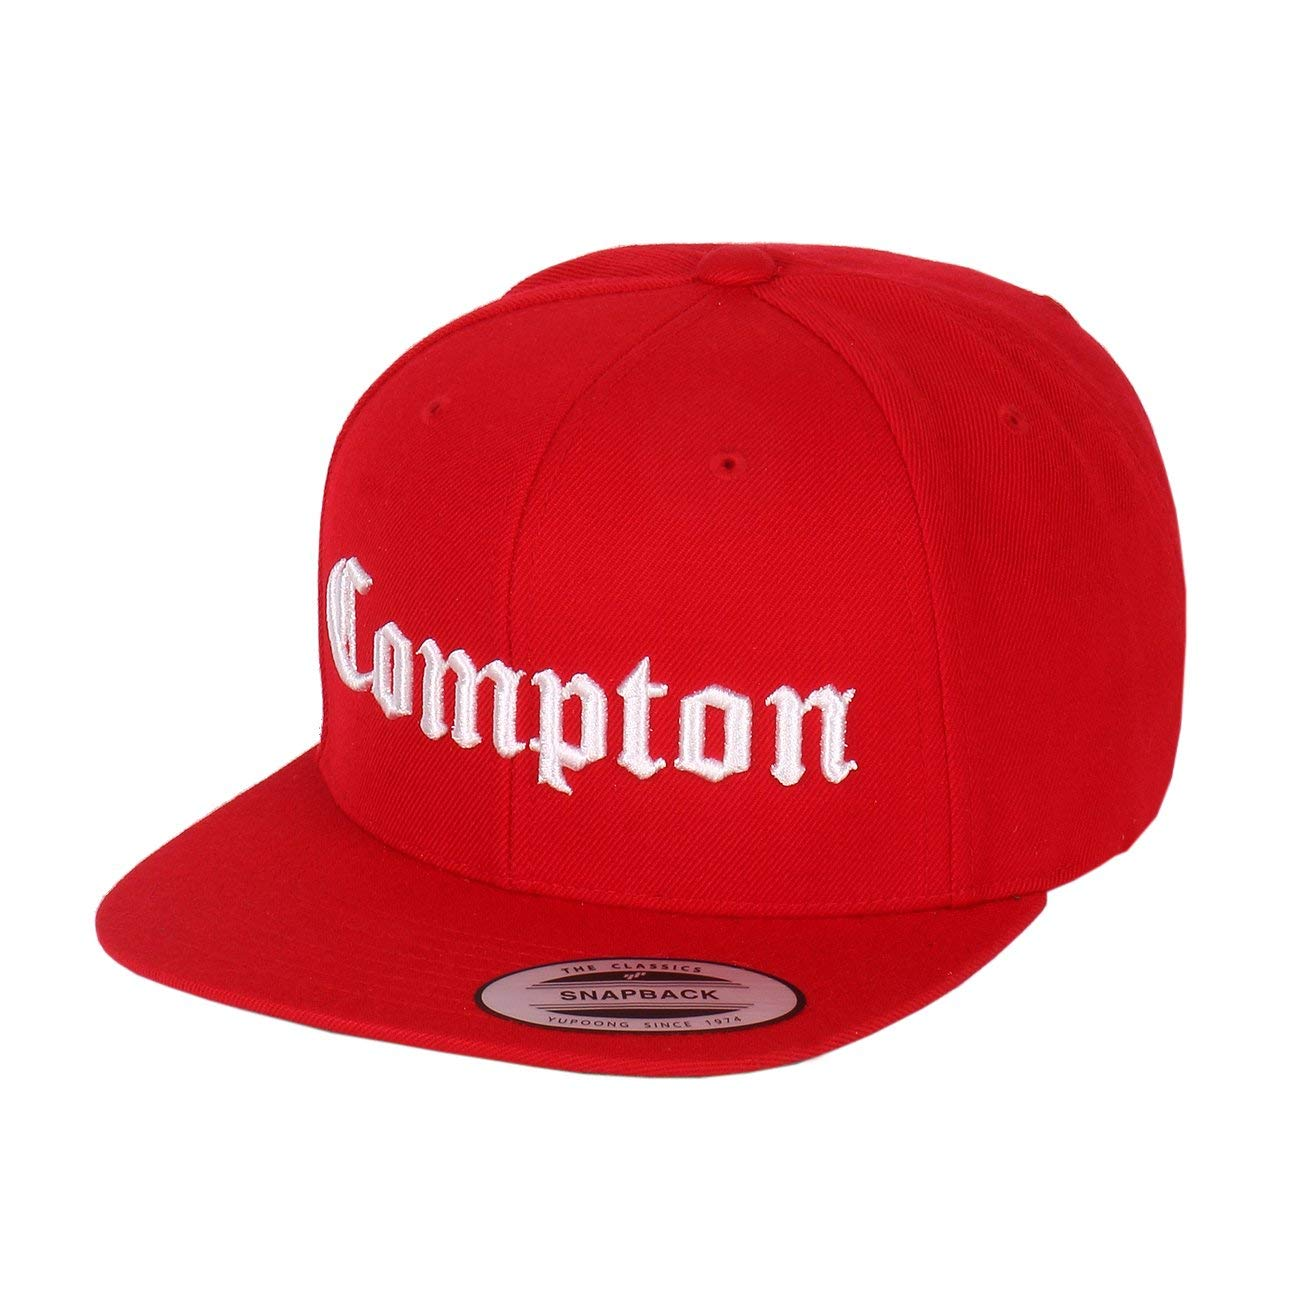 97f79f6dbfe Get Quotations · 1611MAIN Compton Embroidery Flat Bill Adjustable Yupoong  Cap by Flexfit (More Colors)